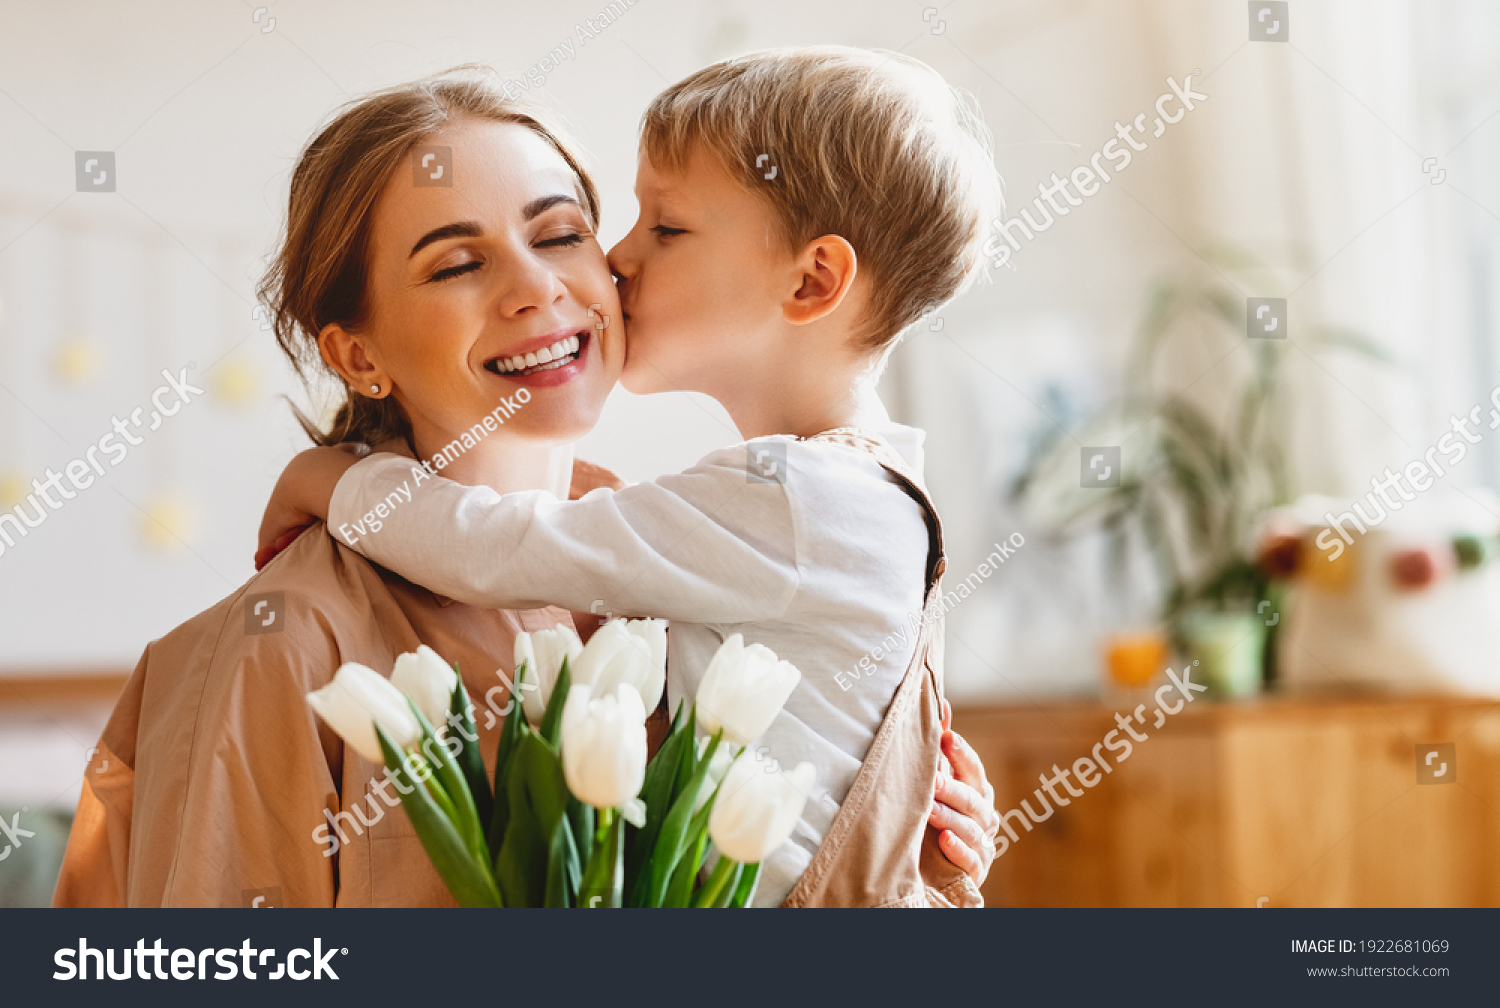 tender son kisses the happy mother and gives her a bouquet of tulips, congratulating her on mother's day during holiday celebration at home #1922681069